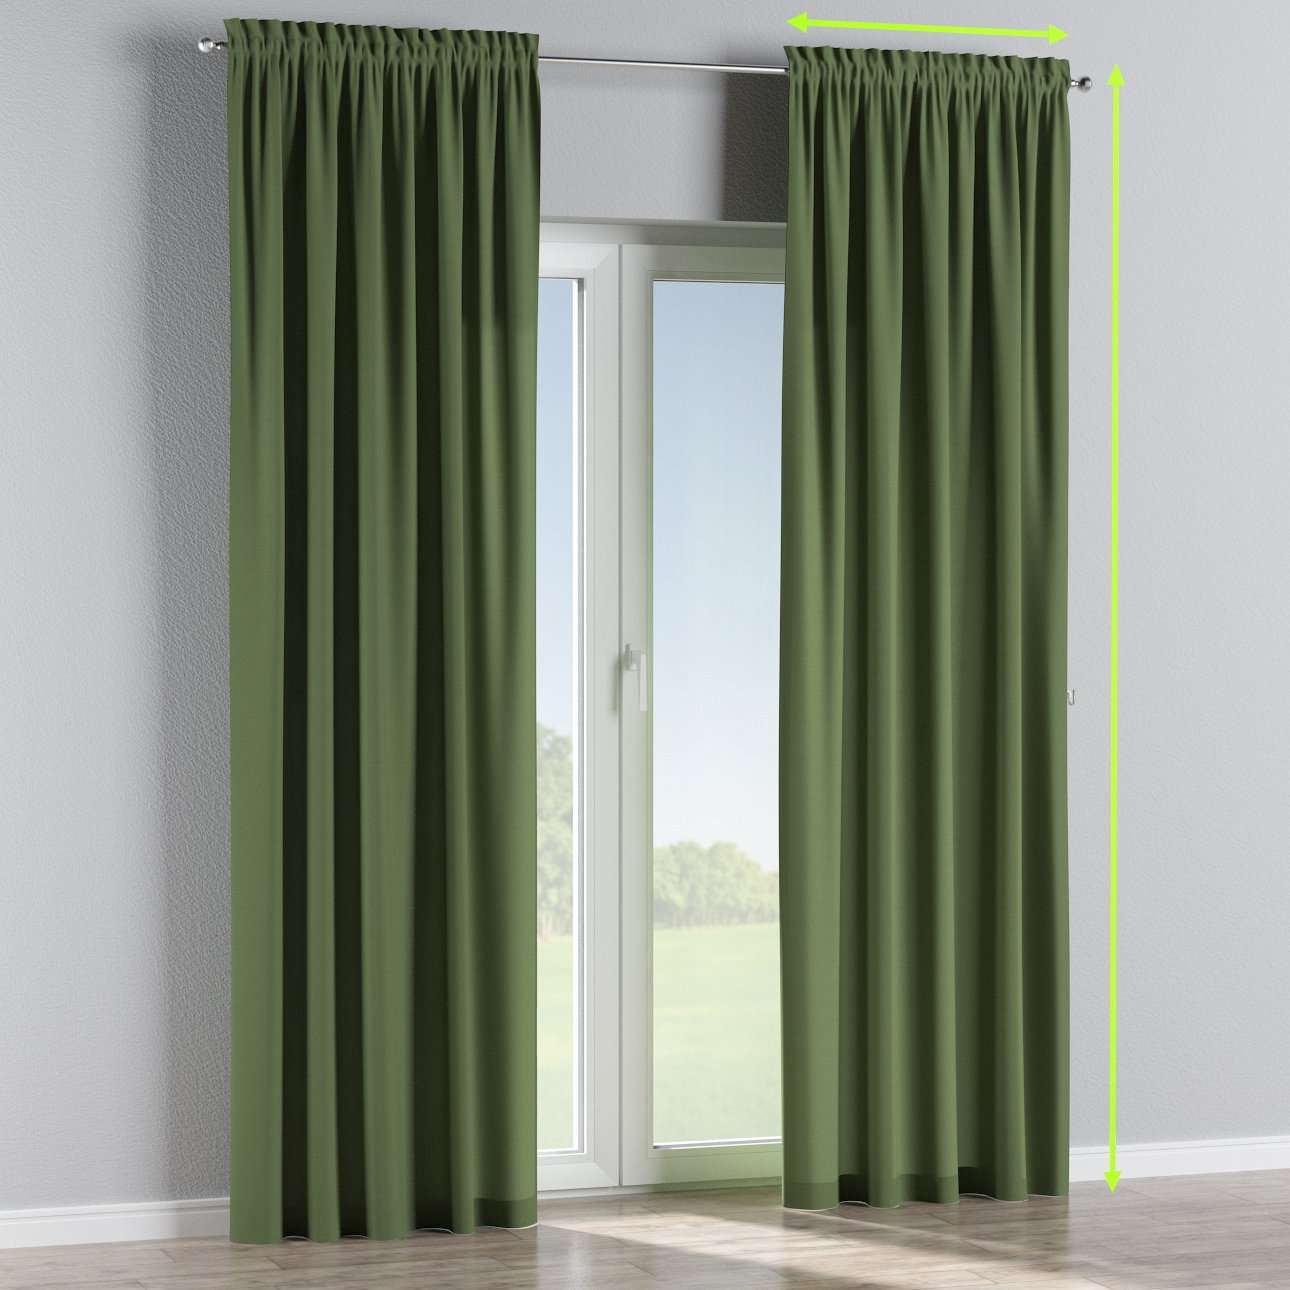 Slot and frill lined curtains in collection Cotton Panama, fabric: 702-06